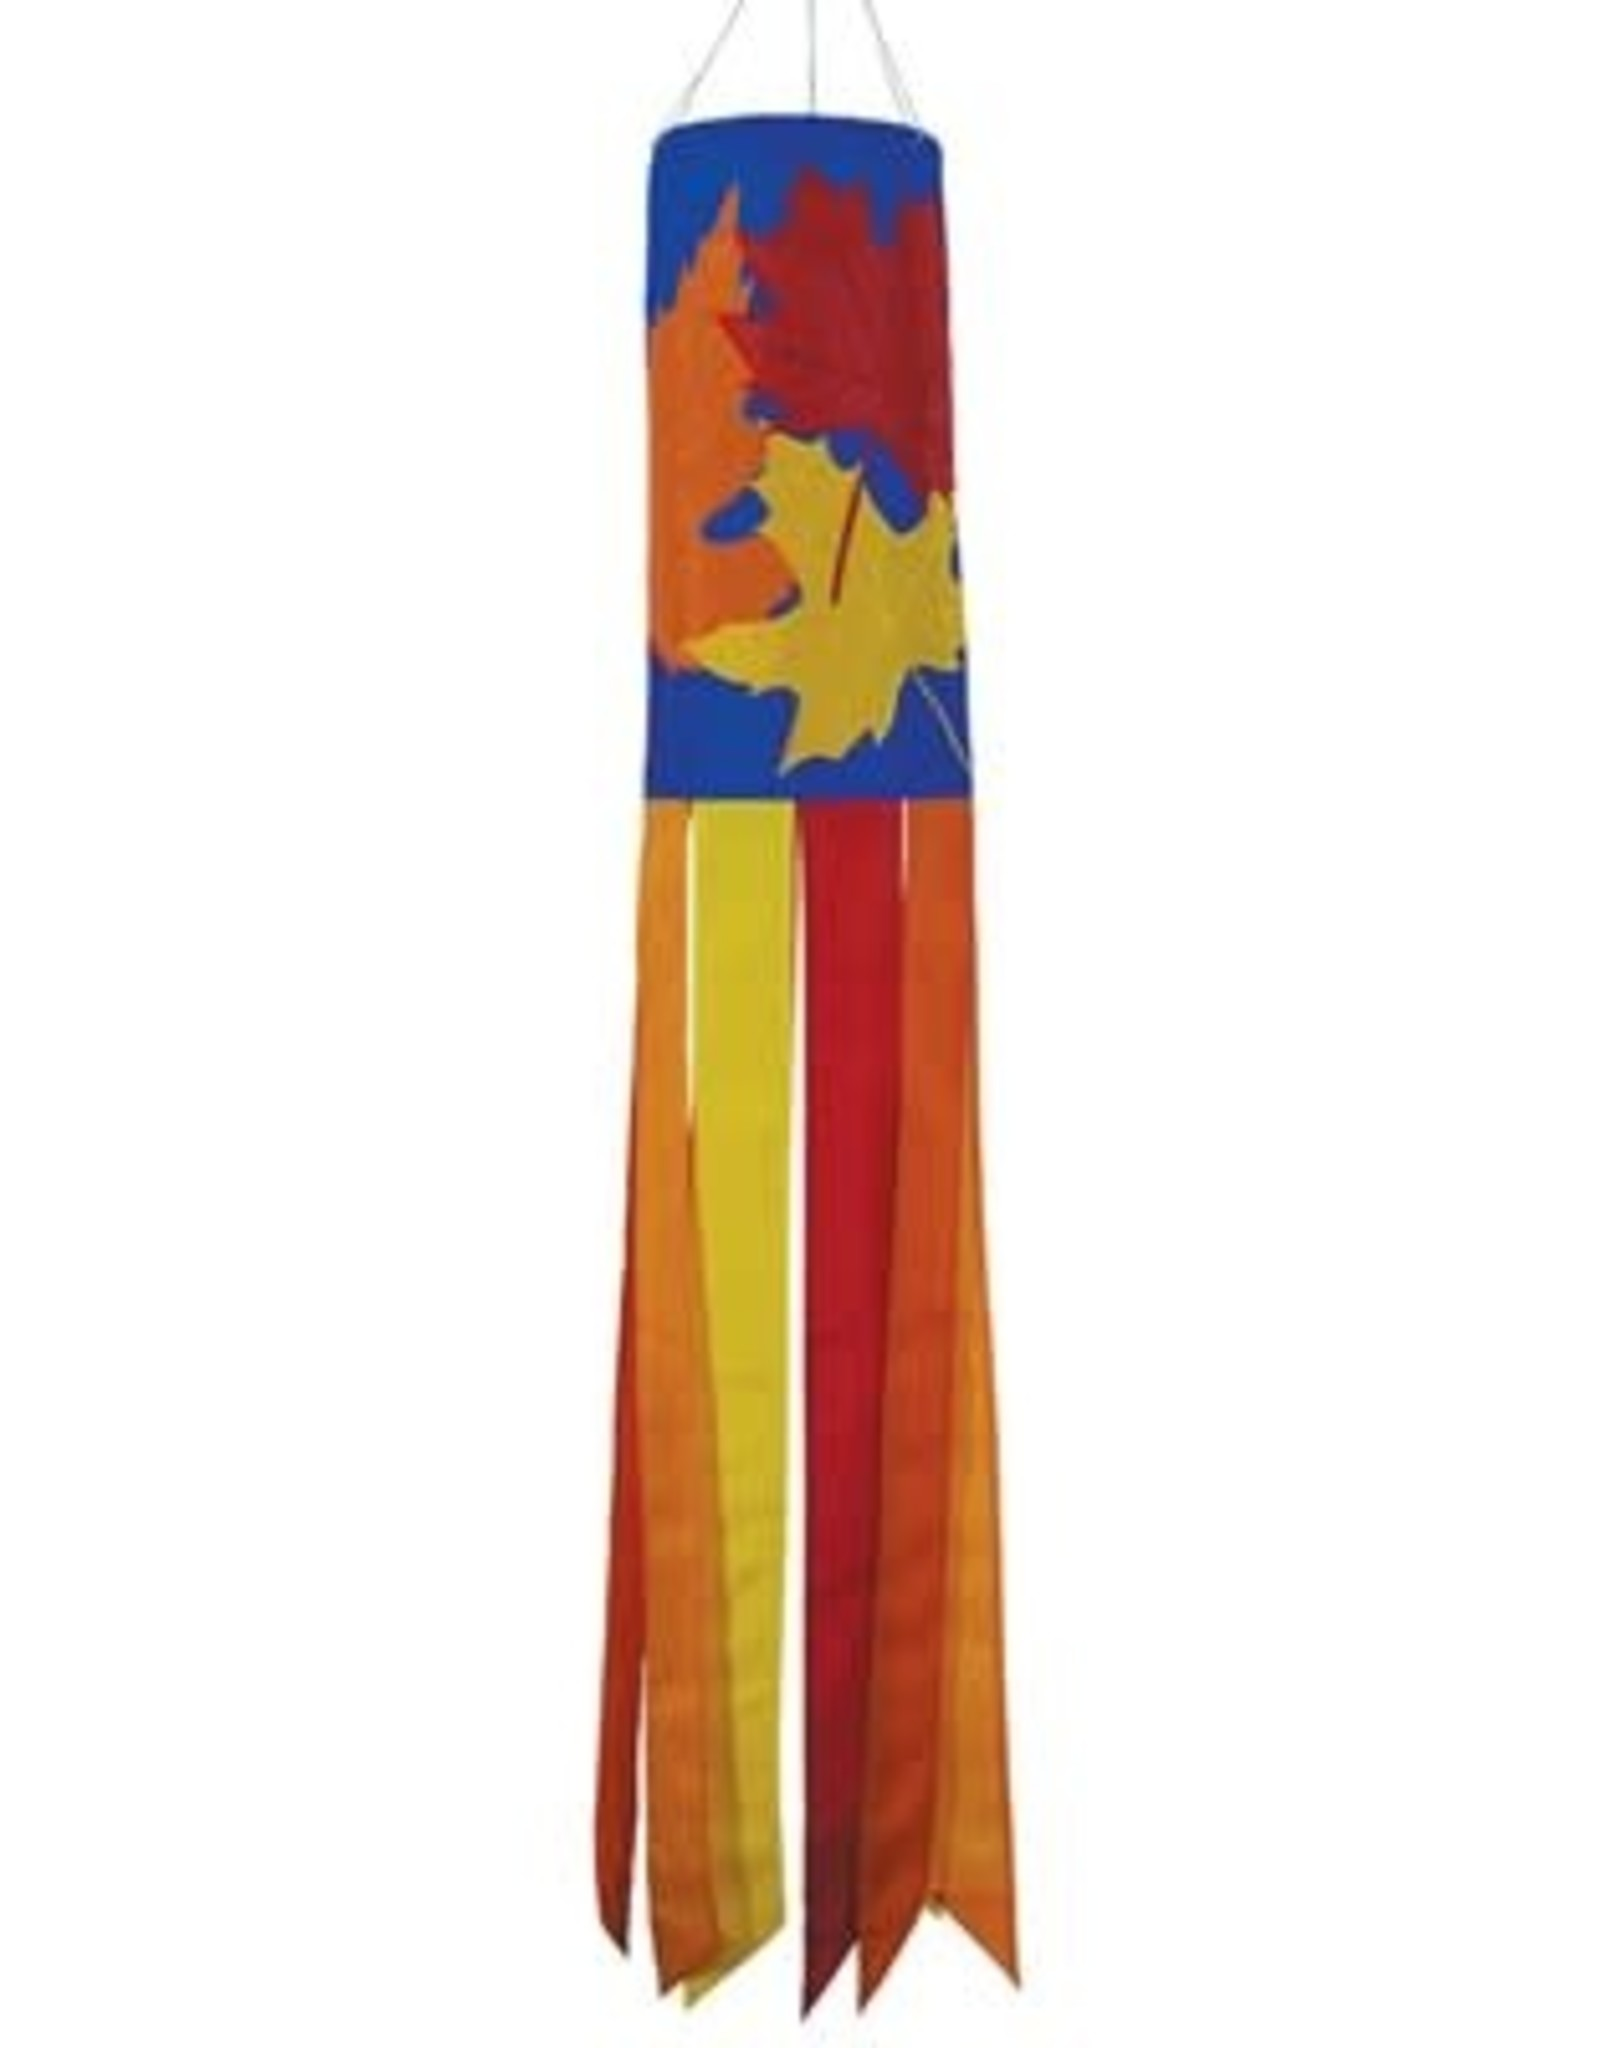 In The Breeze Fall Leaves Windsock